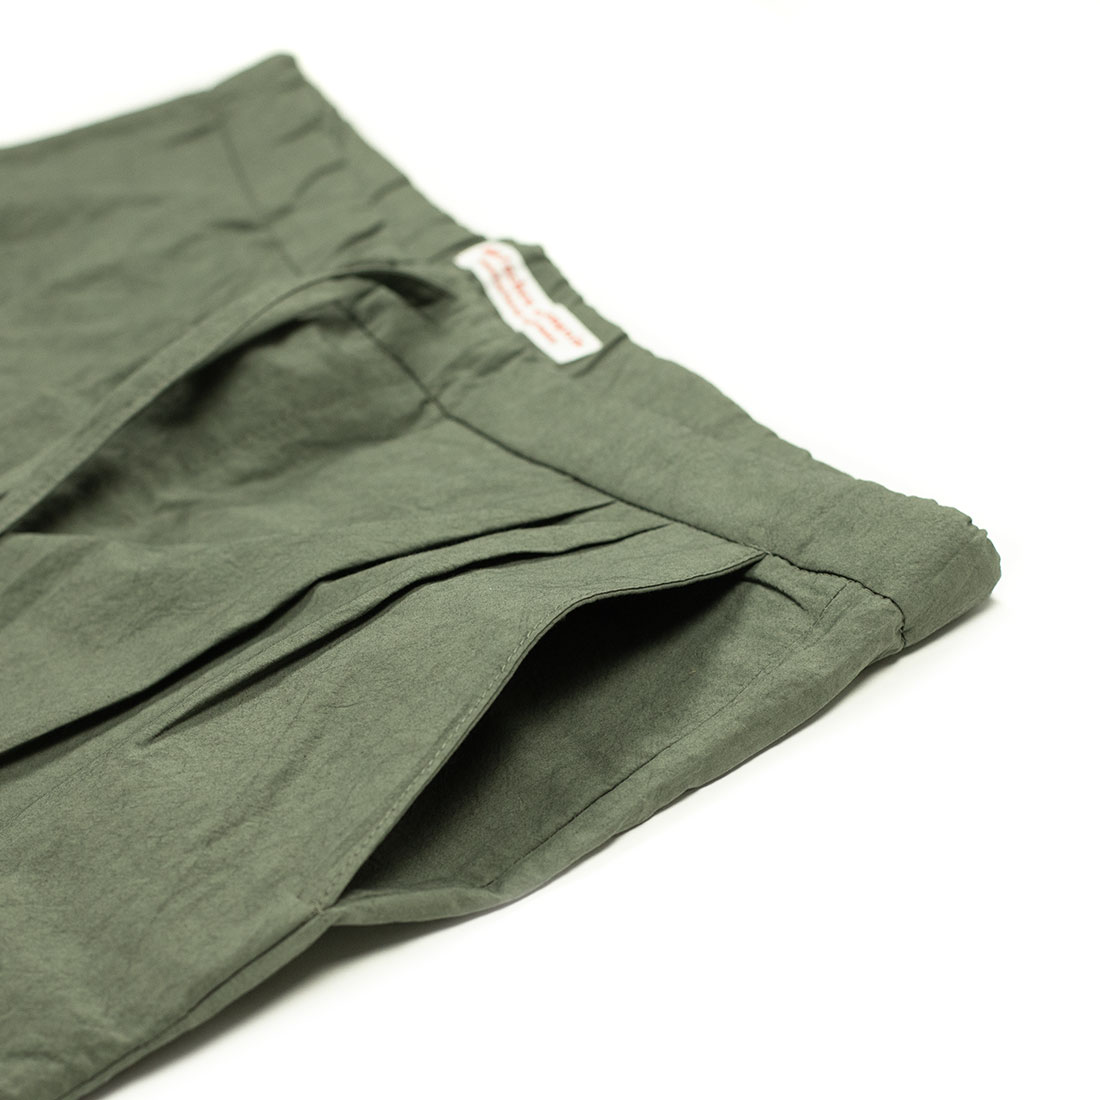 Frank Leder Spring Summer 2021 SS21 Made in Germany lightweight drawstring pleated trousers (5).jpg